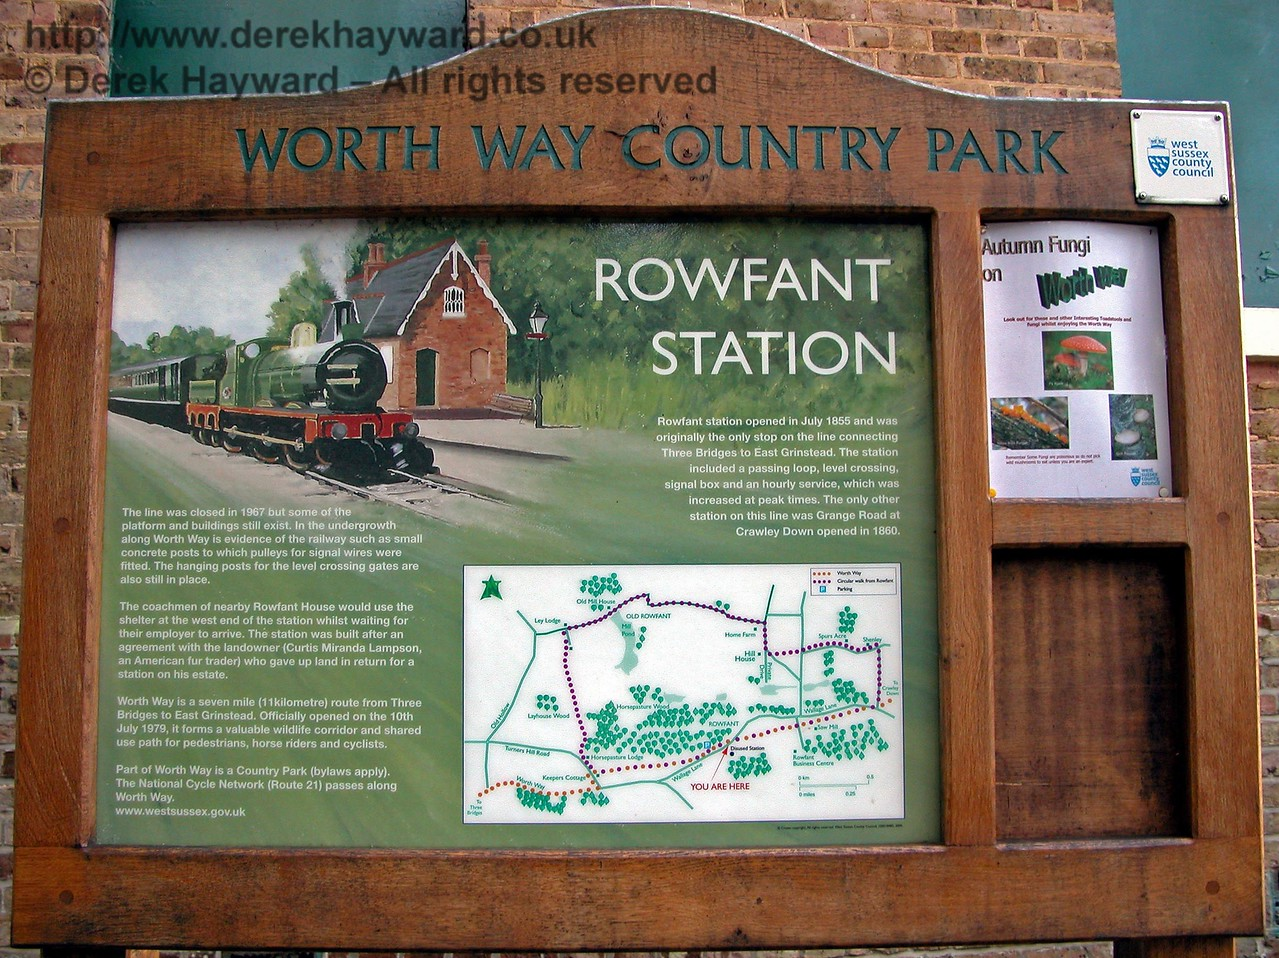 An explanatory sign erected at Rowfant Station referring to Worth Way Country Park. 14.11.2005